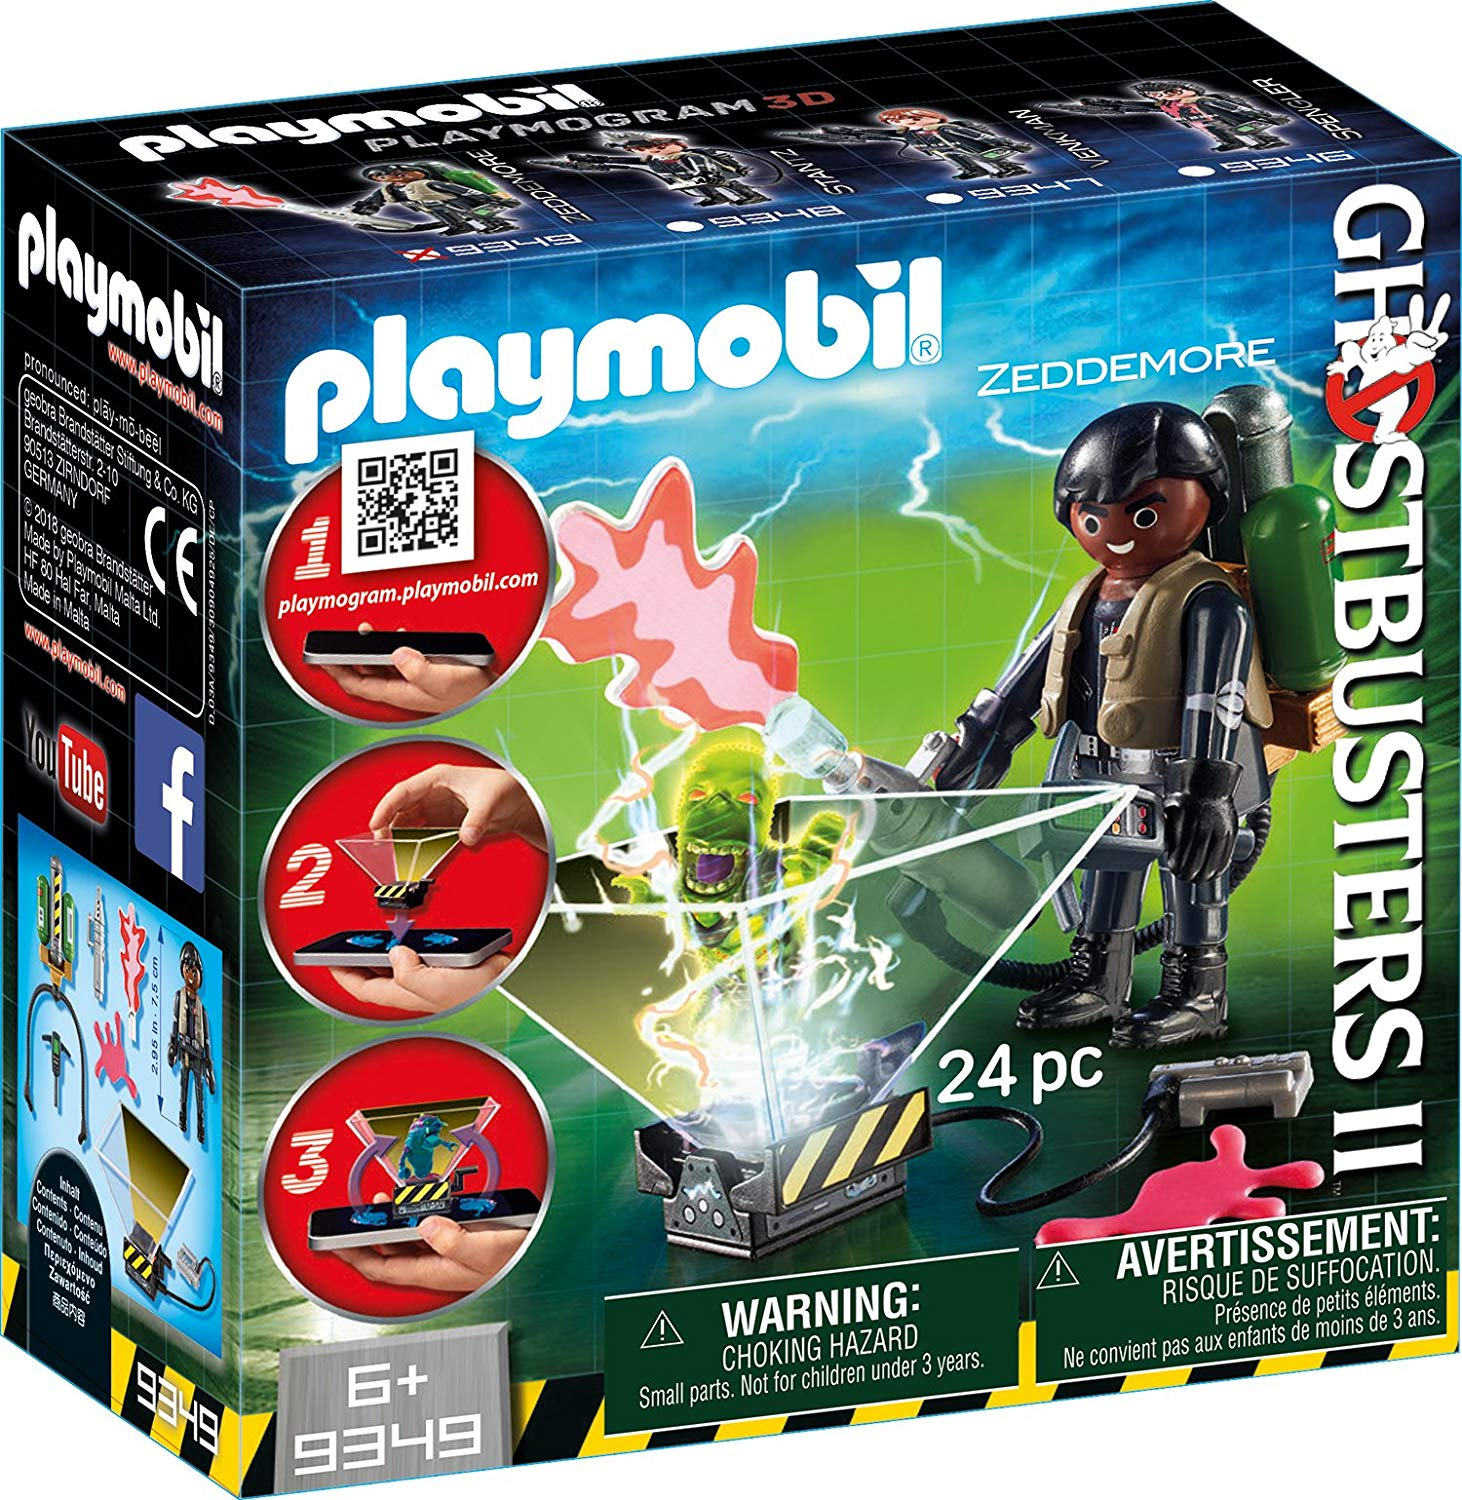 Playmobil Ghostbusters amazon